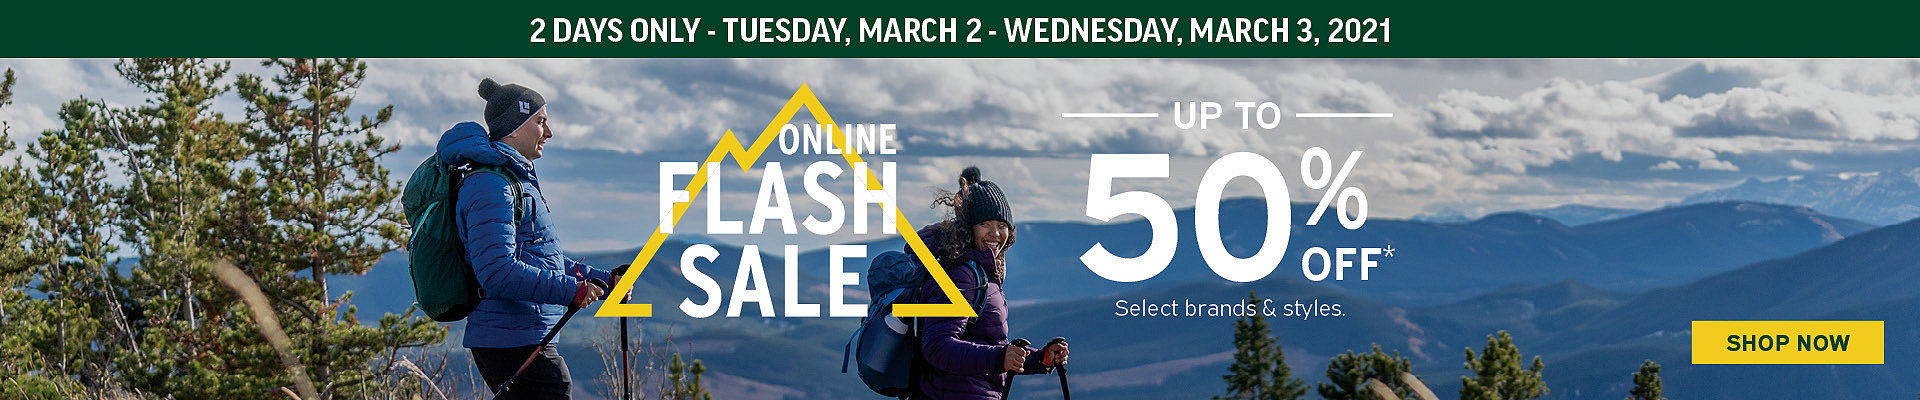 2-Day Online Only Flash Sale up to 50% Off* at Atmosphere.ca